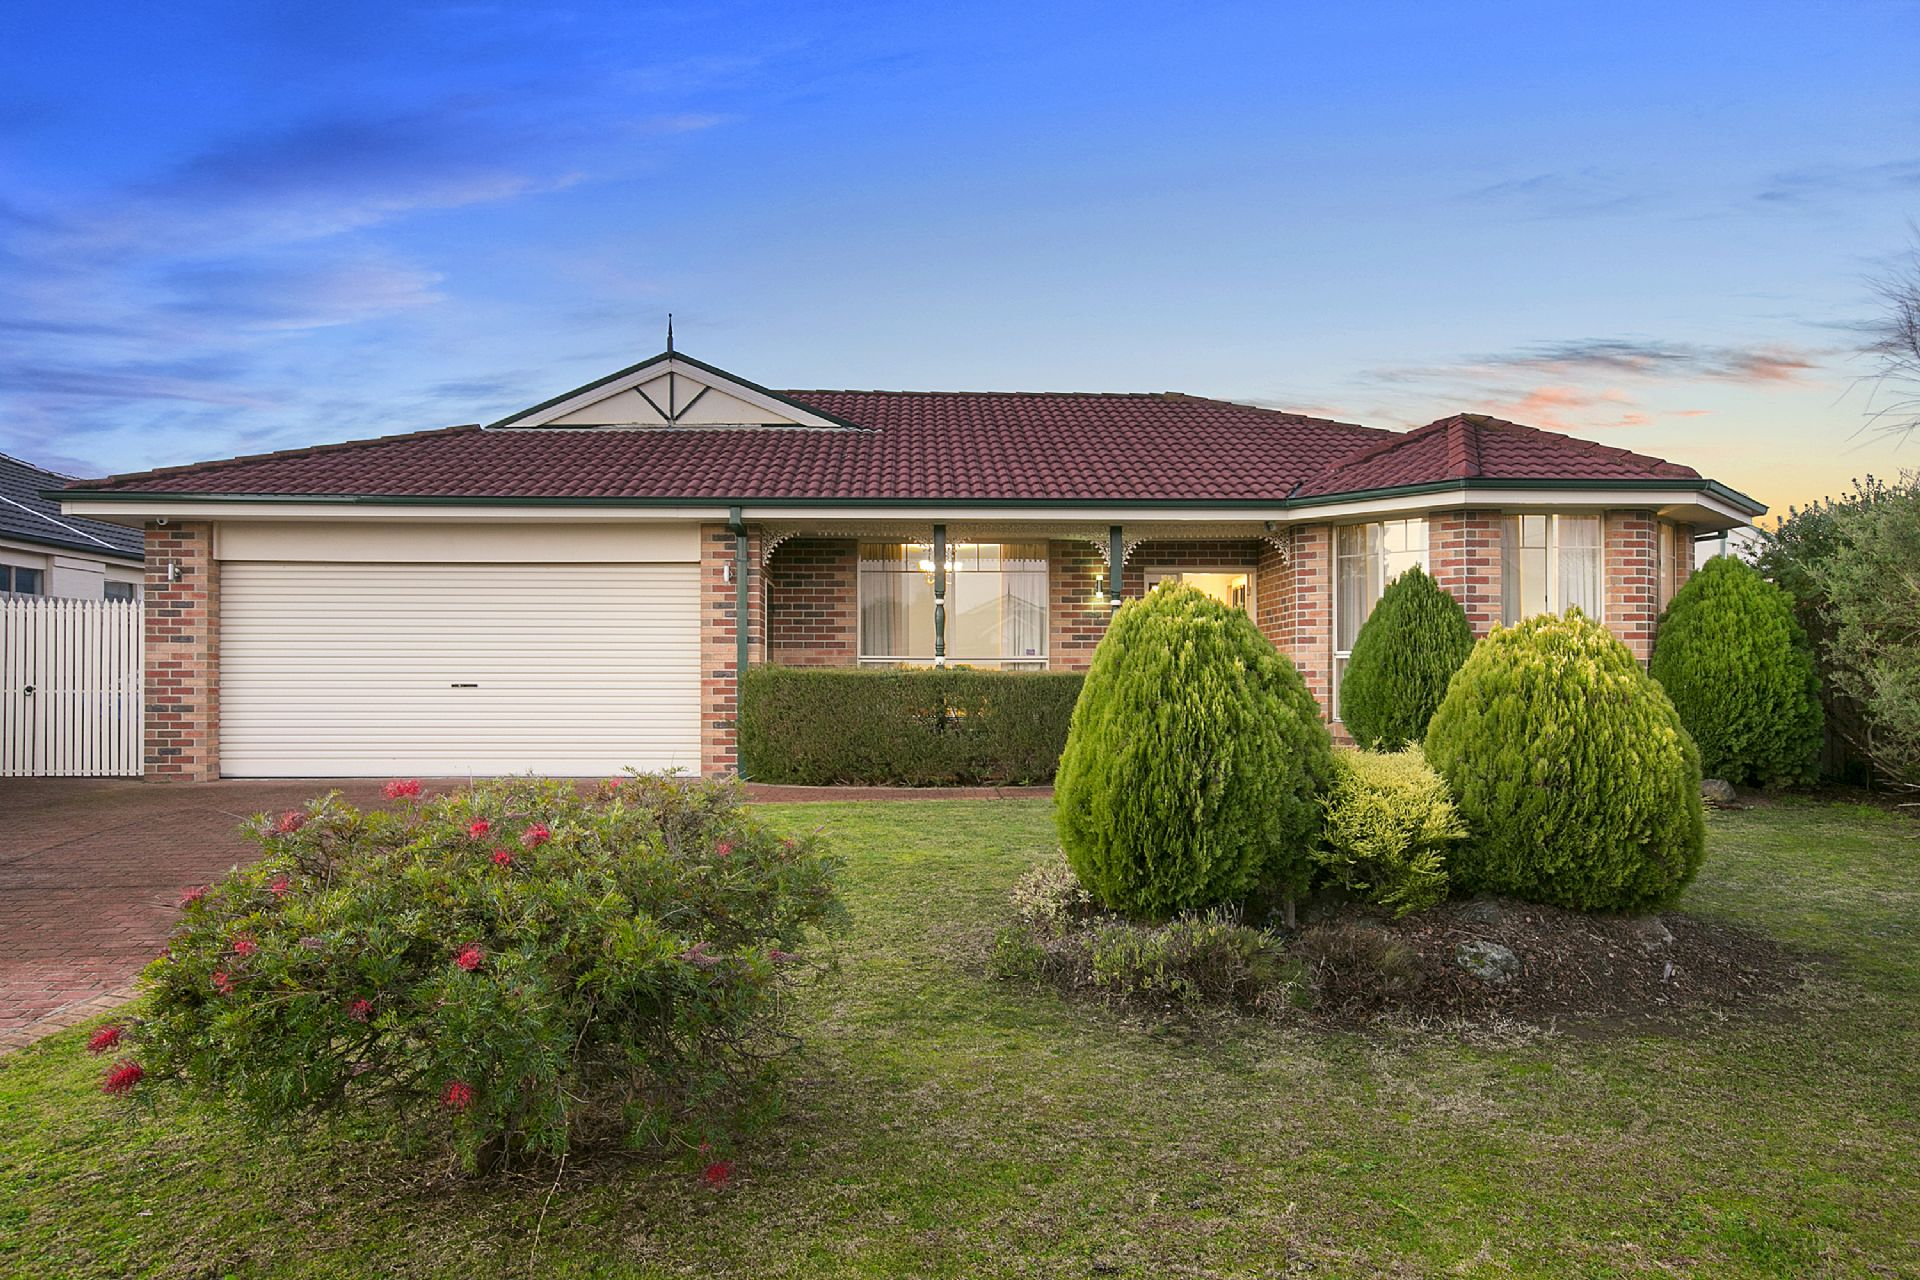 13 Marquis Avenue, MORNINGTON, VIC, 3931 - Image